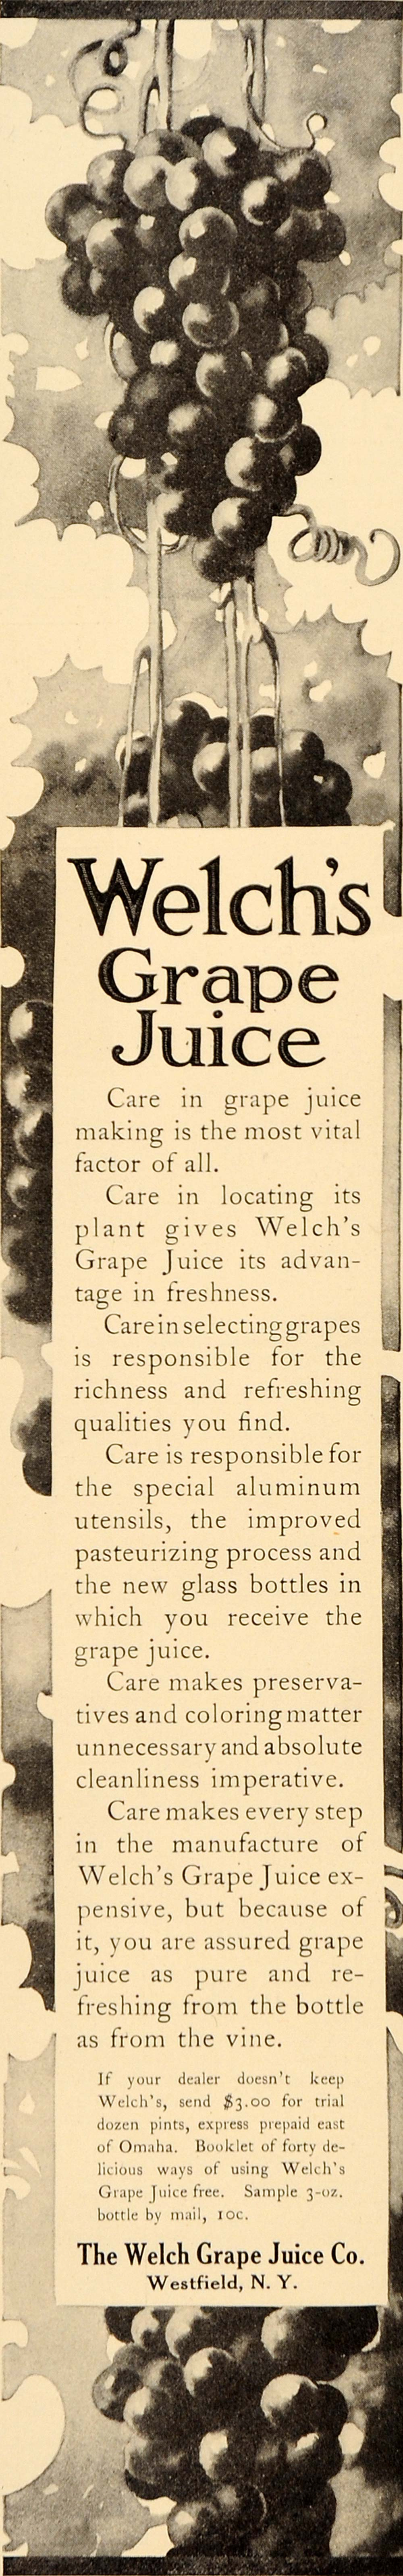 1909 Ad Welch's Grape Juice Concord Westfield New York - ORIGINAL LHJ1